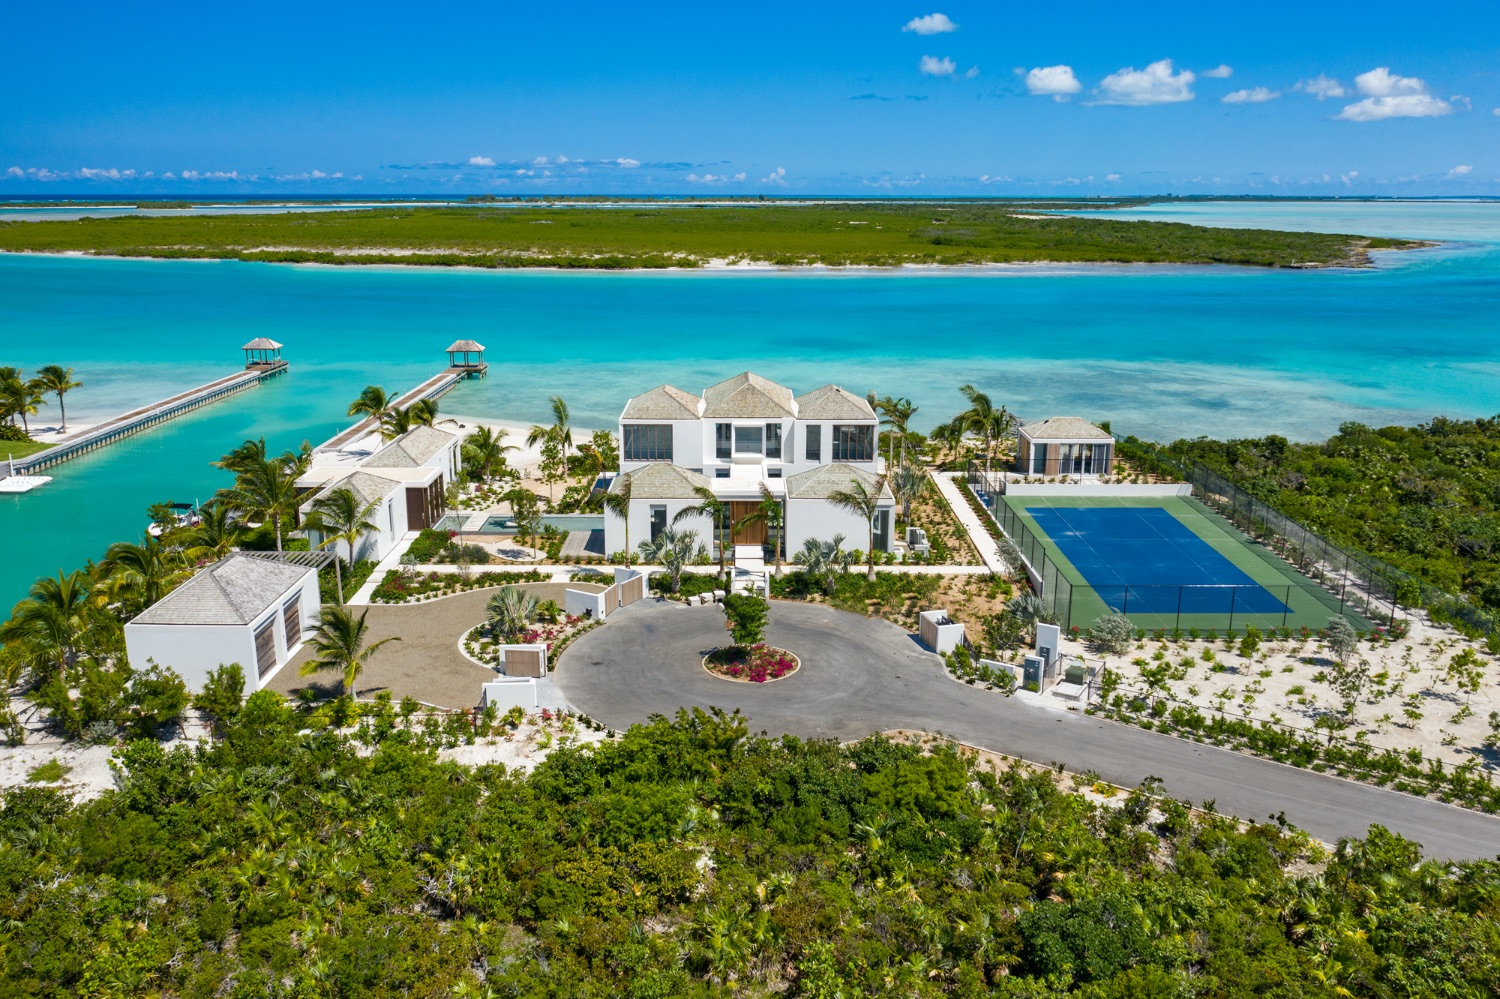 Blondel Cove, Turks and Caicos